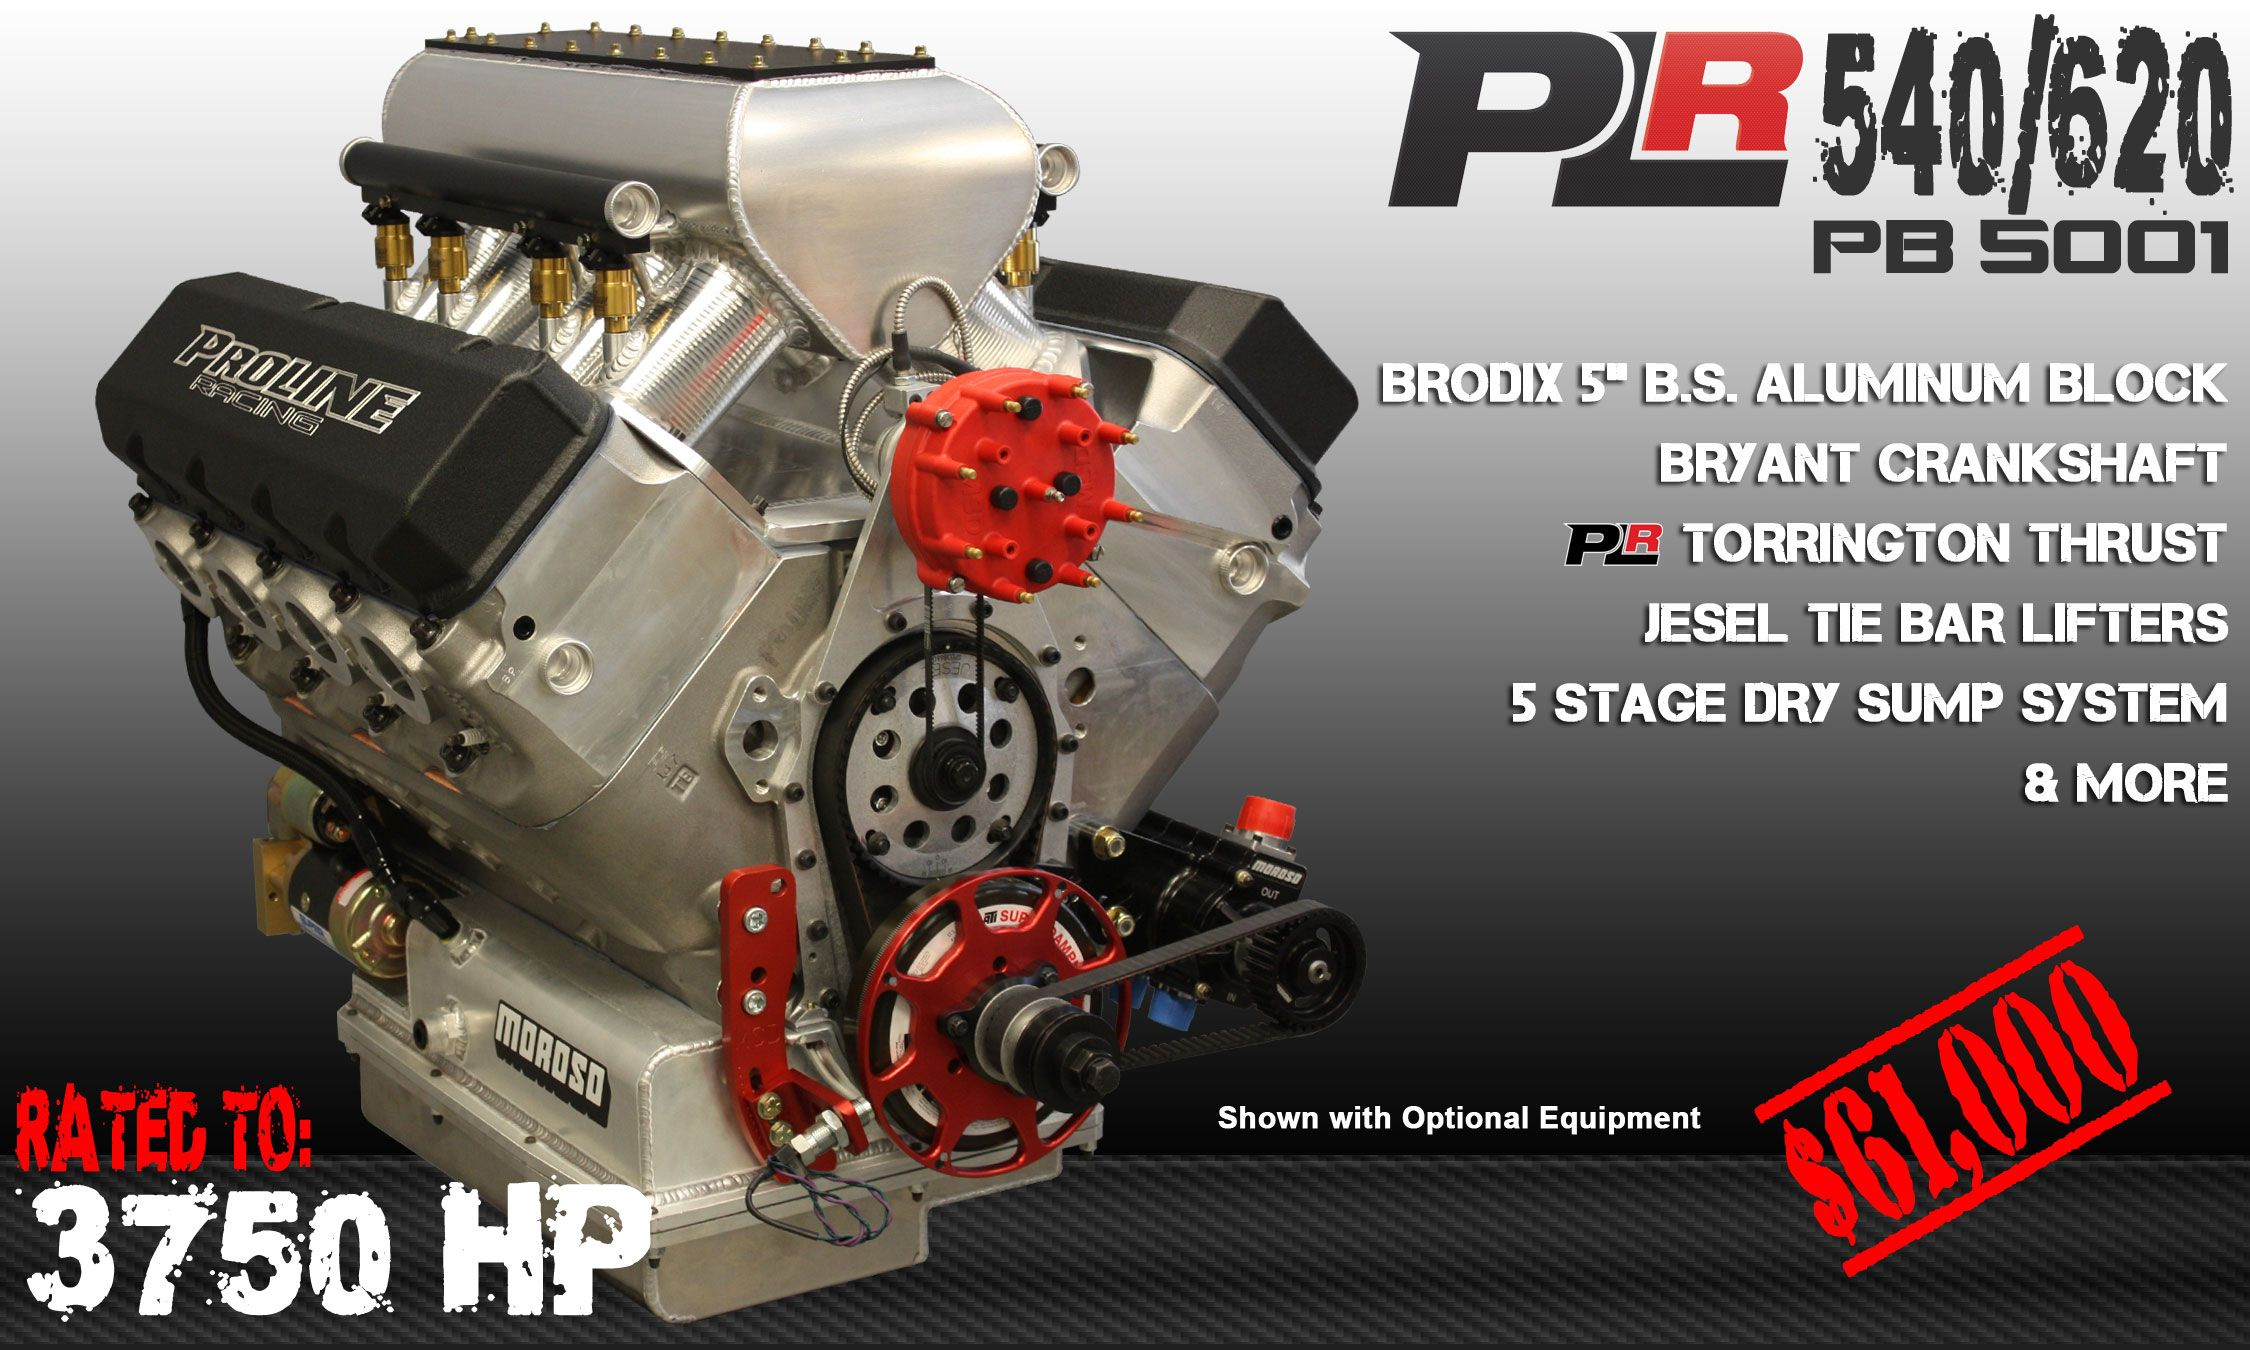 Plr 540 620 Pb5001 3750 Hp Pro Line Racing Sump Graphic Card Engineering